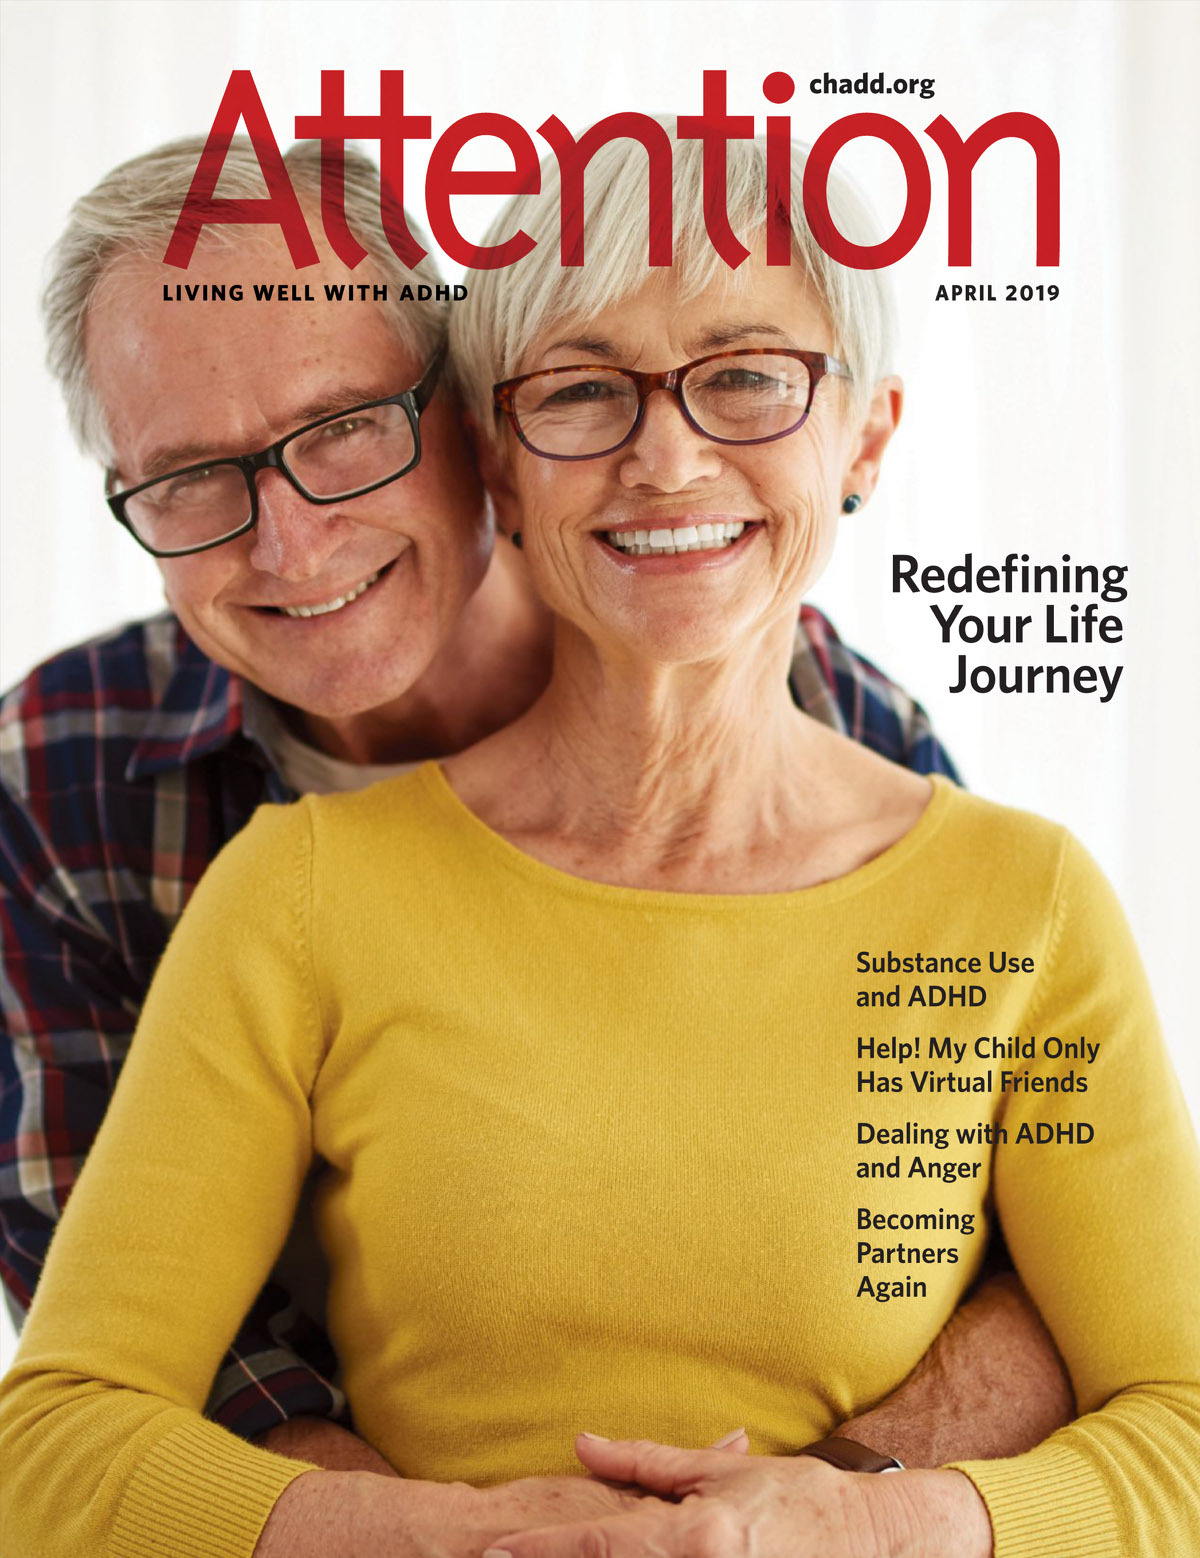 Attention Magazine April 2019 - Living well with ADHD